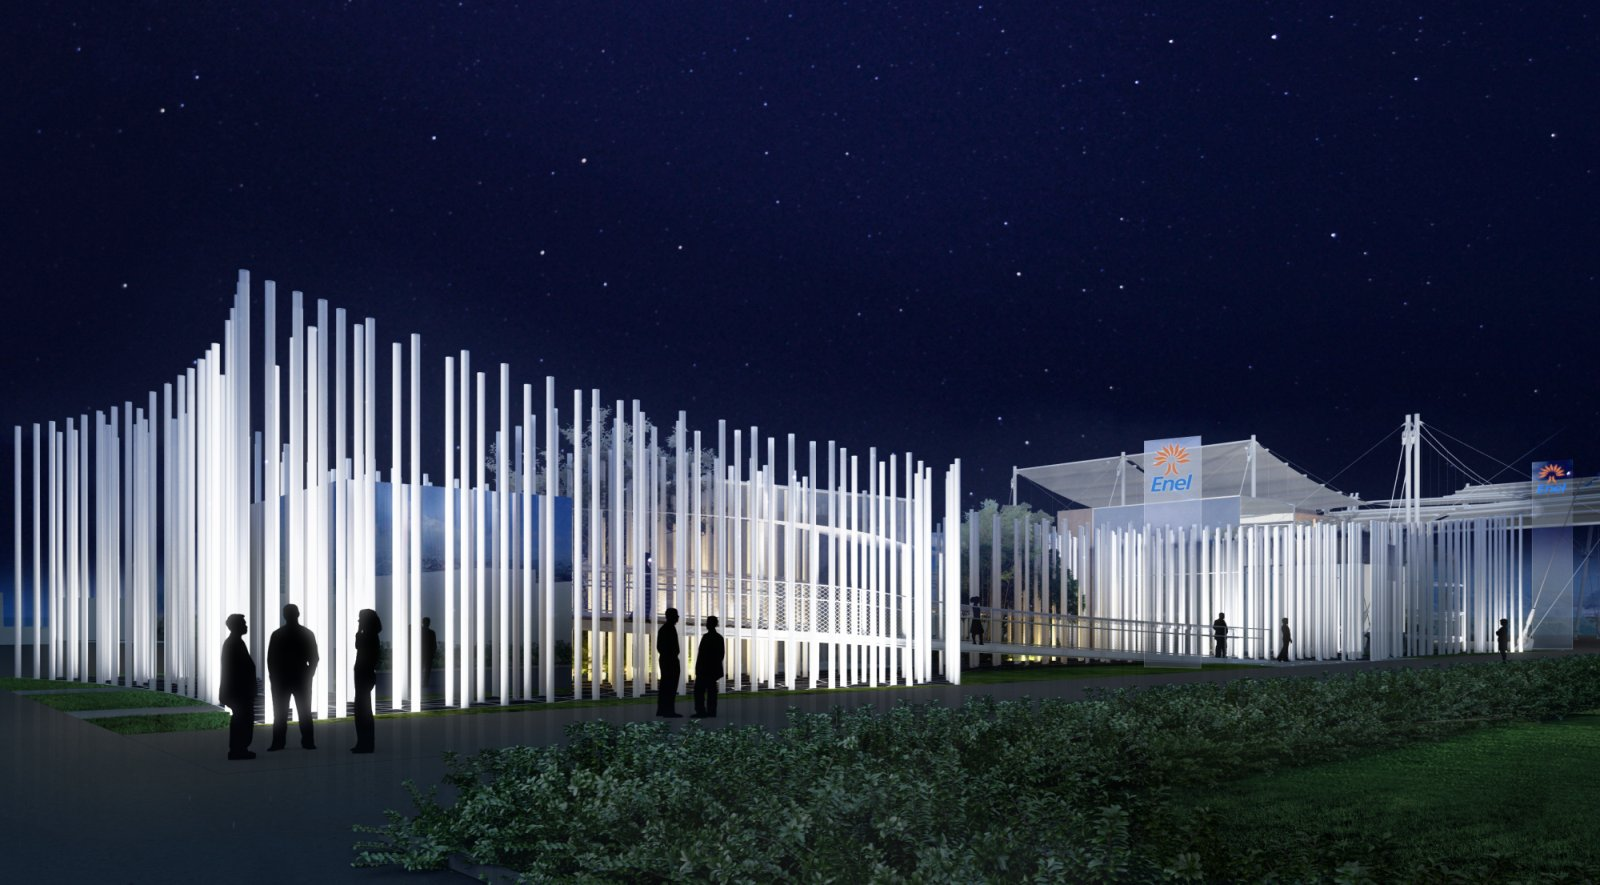 Enel pavilion for expo 2015 by piuarch for Home decor expo 2015